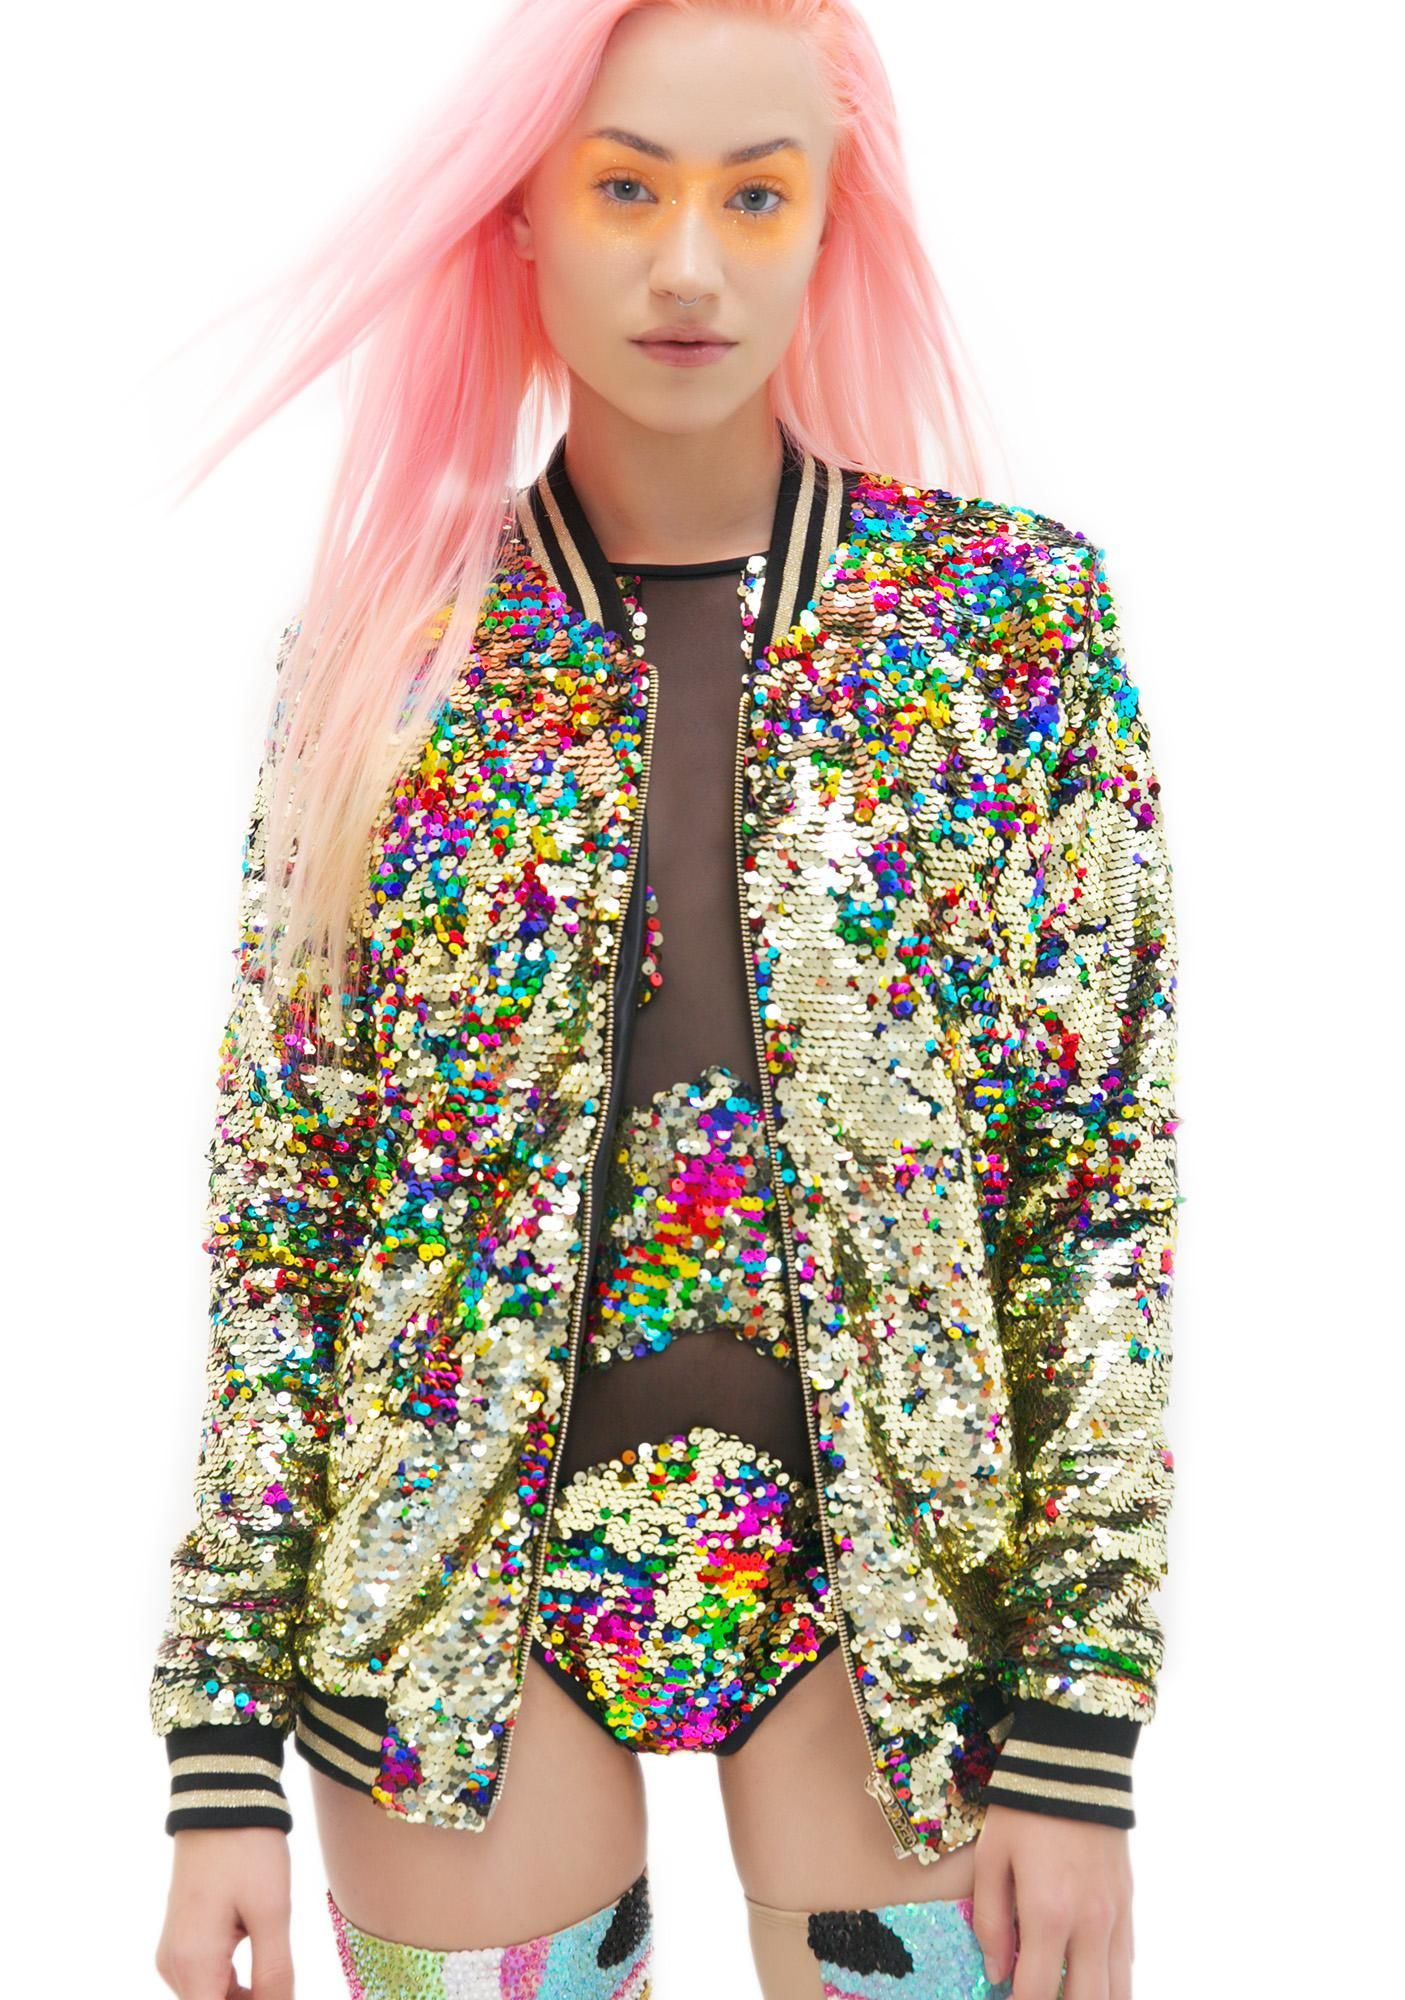 Jaded London Rainbow Sequin Bomber Jacket yer kandi-coated rain drops bb. This sik af fully-lined jacket features gold sequin all over with rainbow embellished accents that's just purely magical with every move. In bomber-style fashion, this long n' relaxed bb has varsity ribbed banding at the neck and cuffs, and a zip up front fer da perfect show-stoppin' touch.